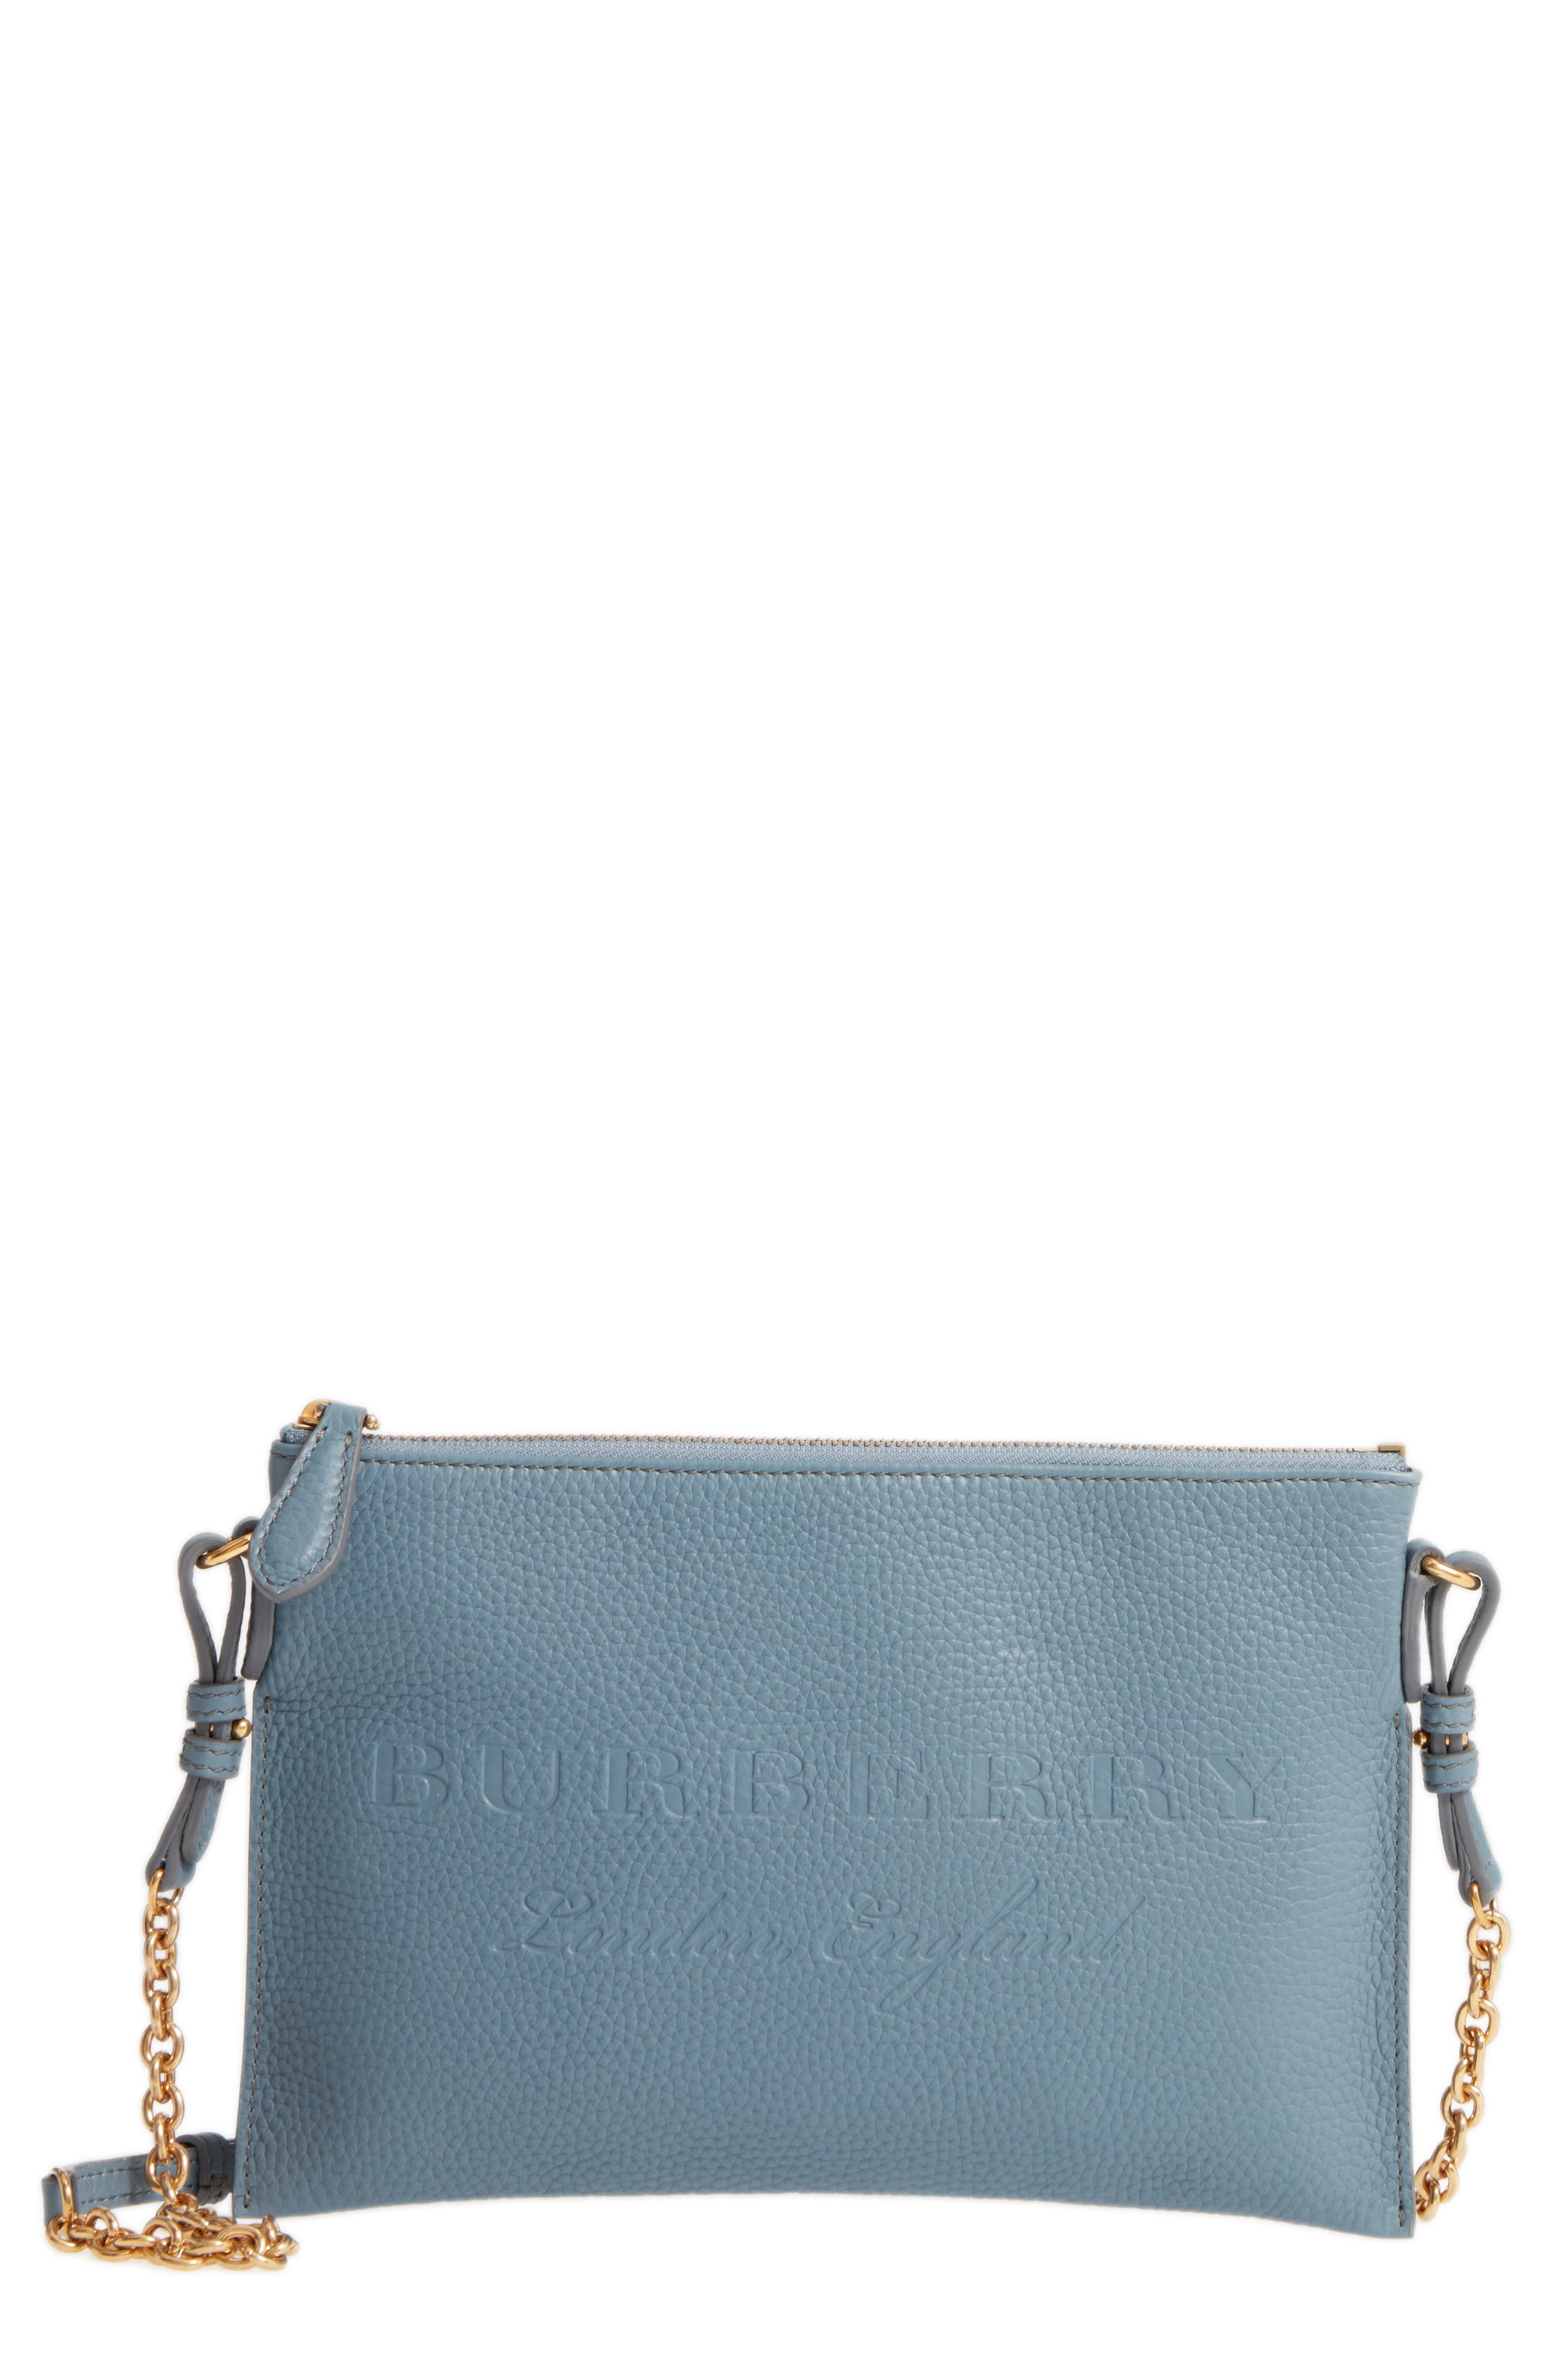 Burberry Peyton Leather Crossbody Bag